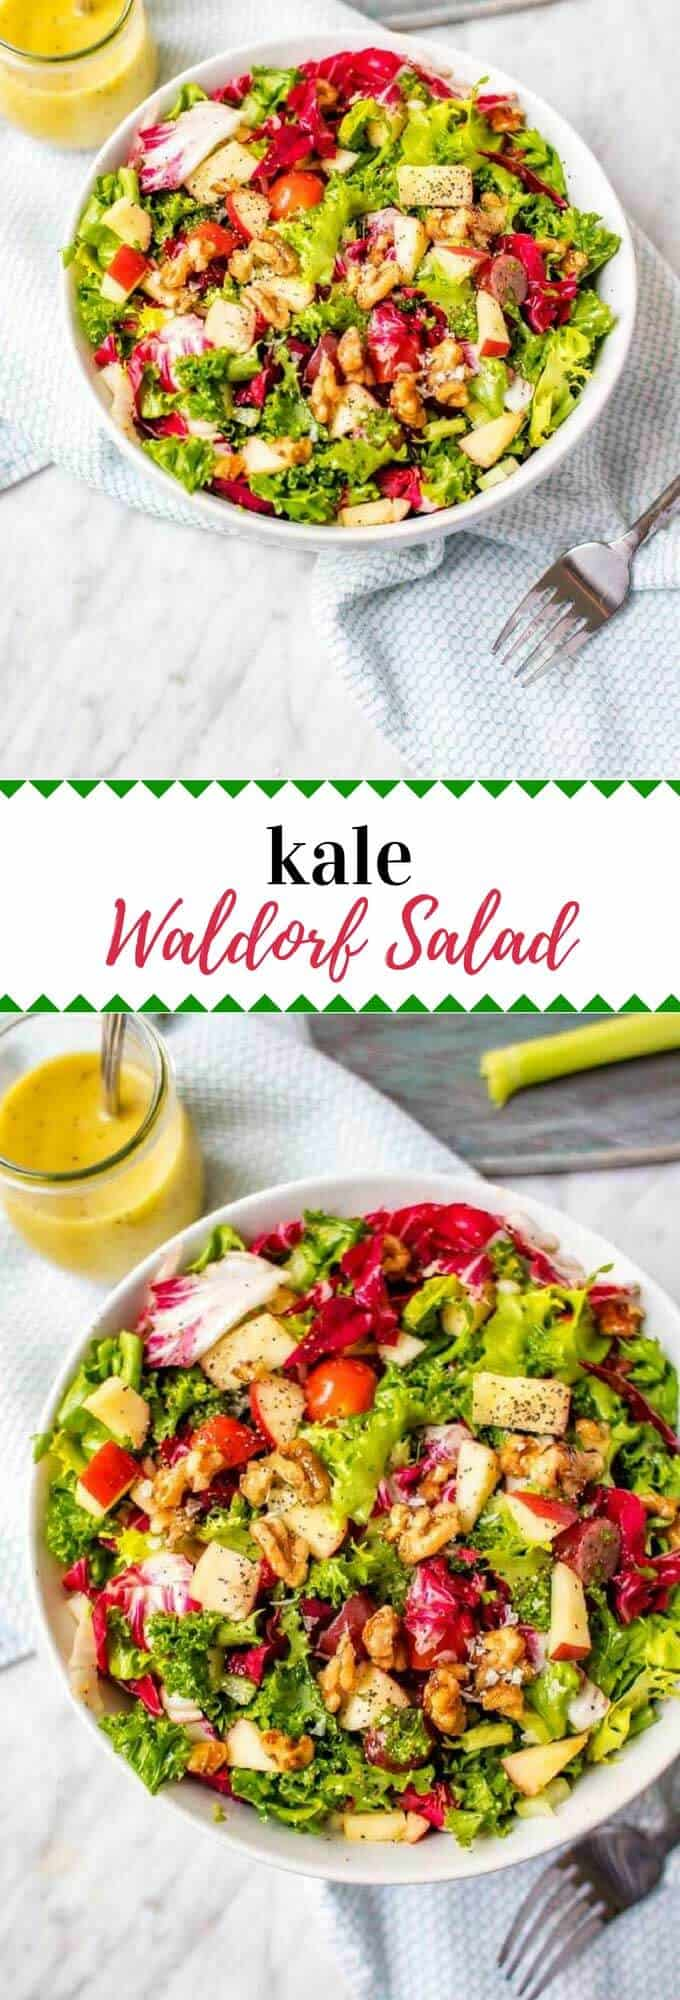 This Kale Waldorf Salad is a healthy vegan salad recipe that the whole family will love.  It is a fun healthier twist on a classic, with a lightened up dressing that will become a favorite.